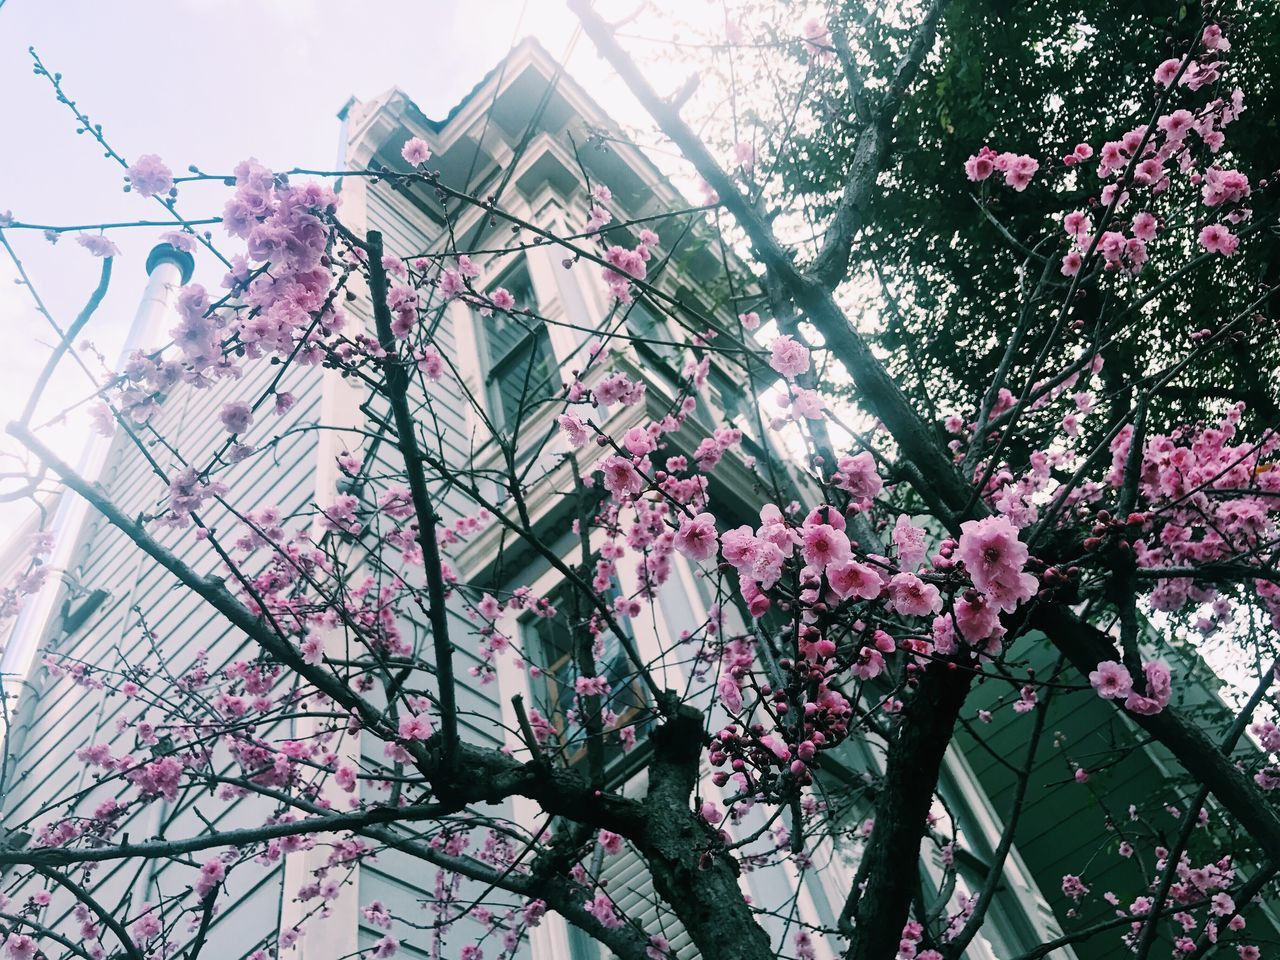 Spring is in the air // Cherry blossoms // Tree Low Angle View Growth Branch Nature Flower Blossom No People Architecture Beauty In Nature Built Structure Pink Color Sky Building Exterior Outdoors Fragility Cherry Tree Day Freshness Lilac